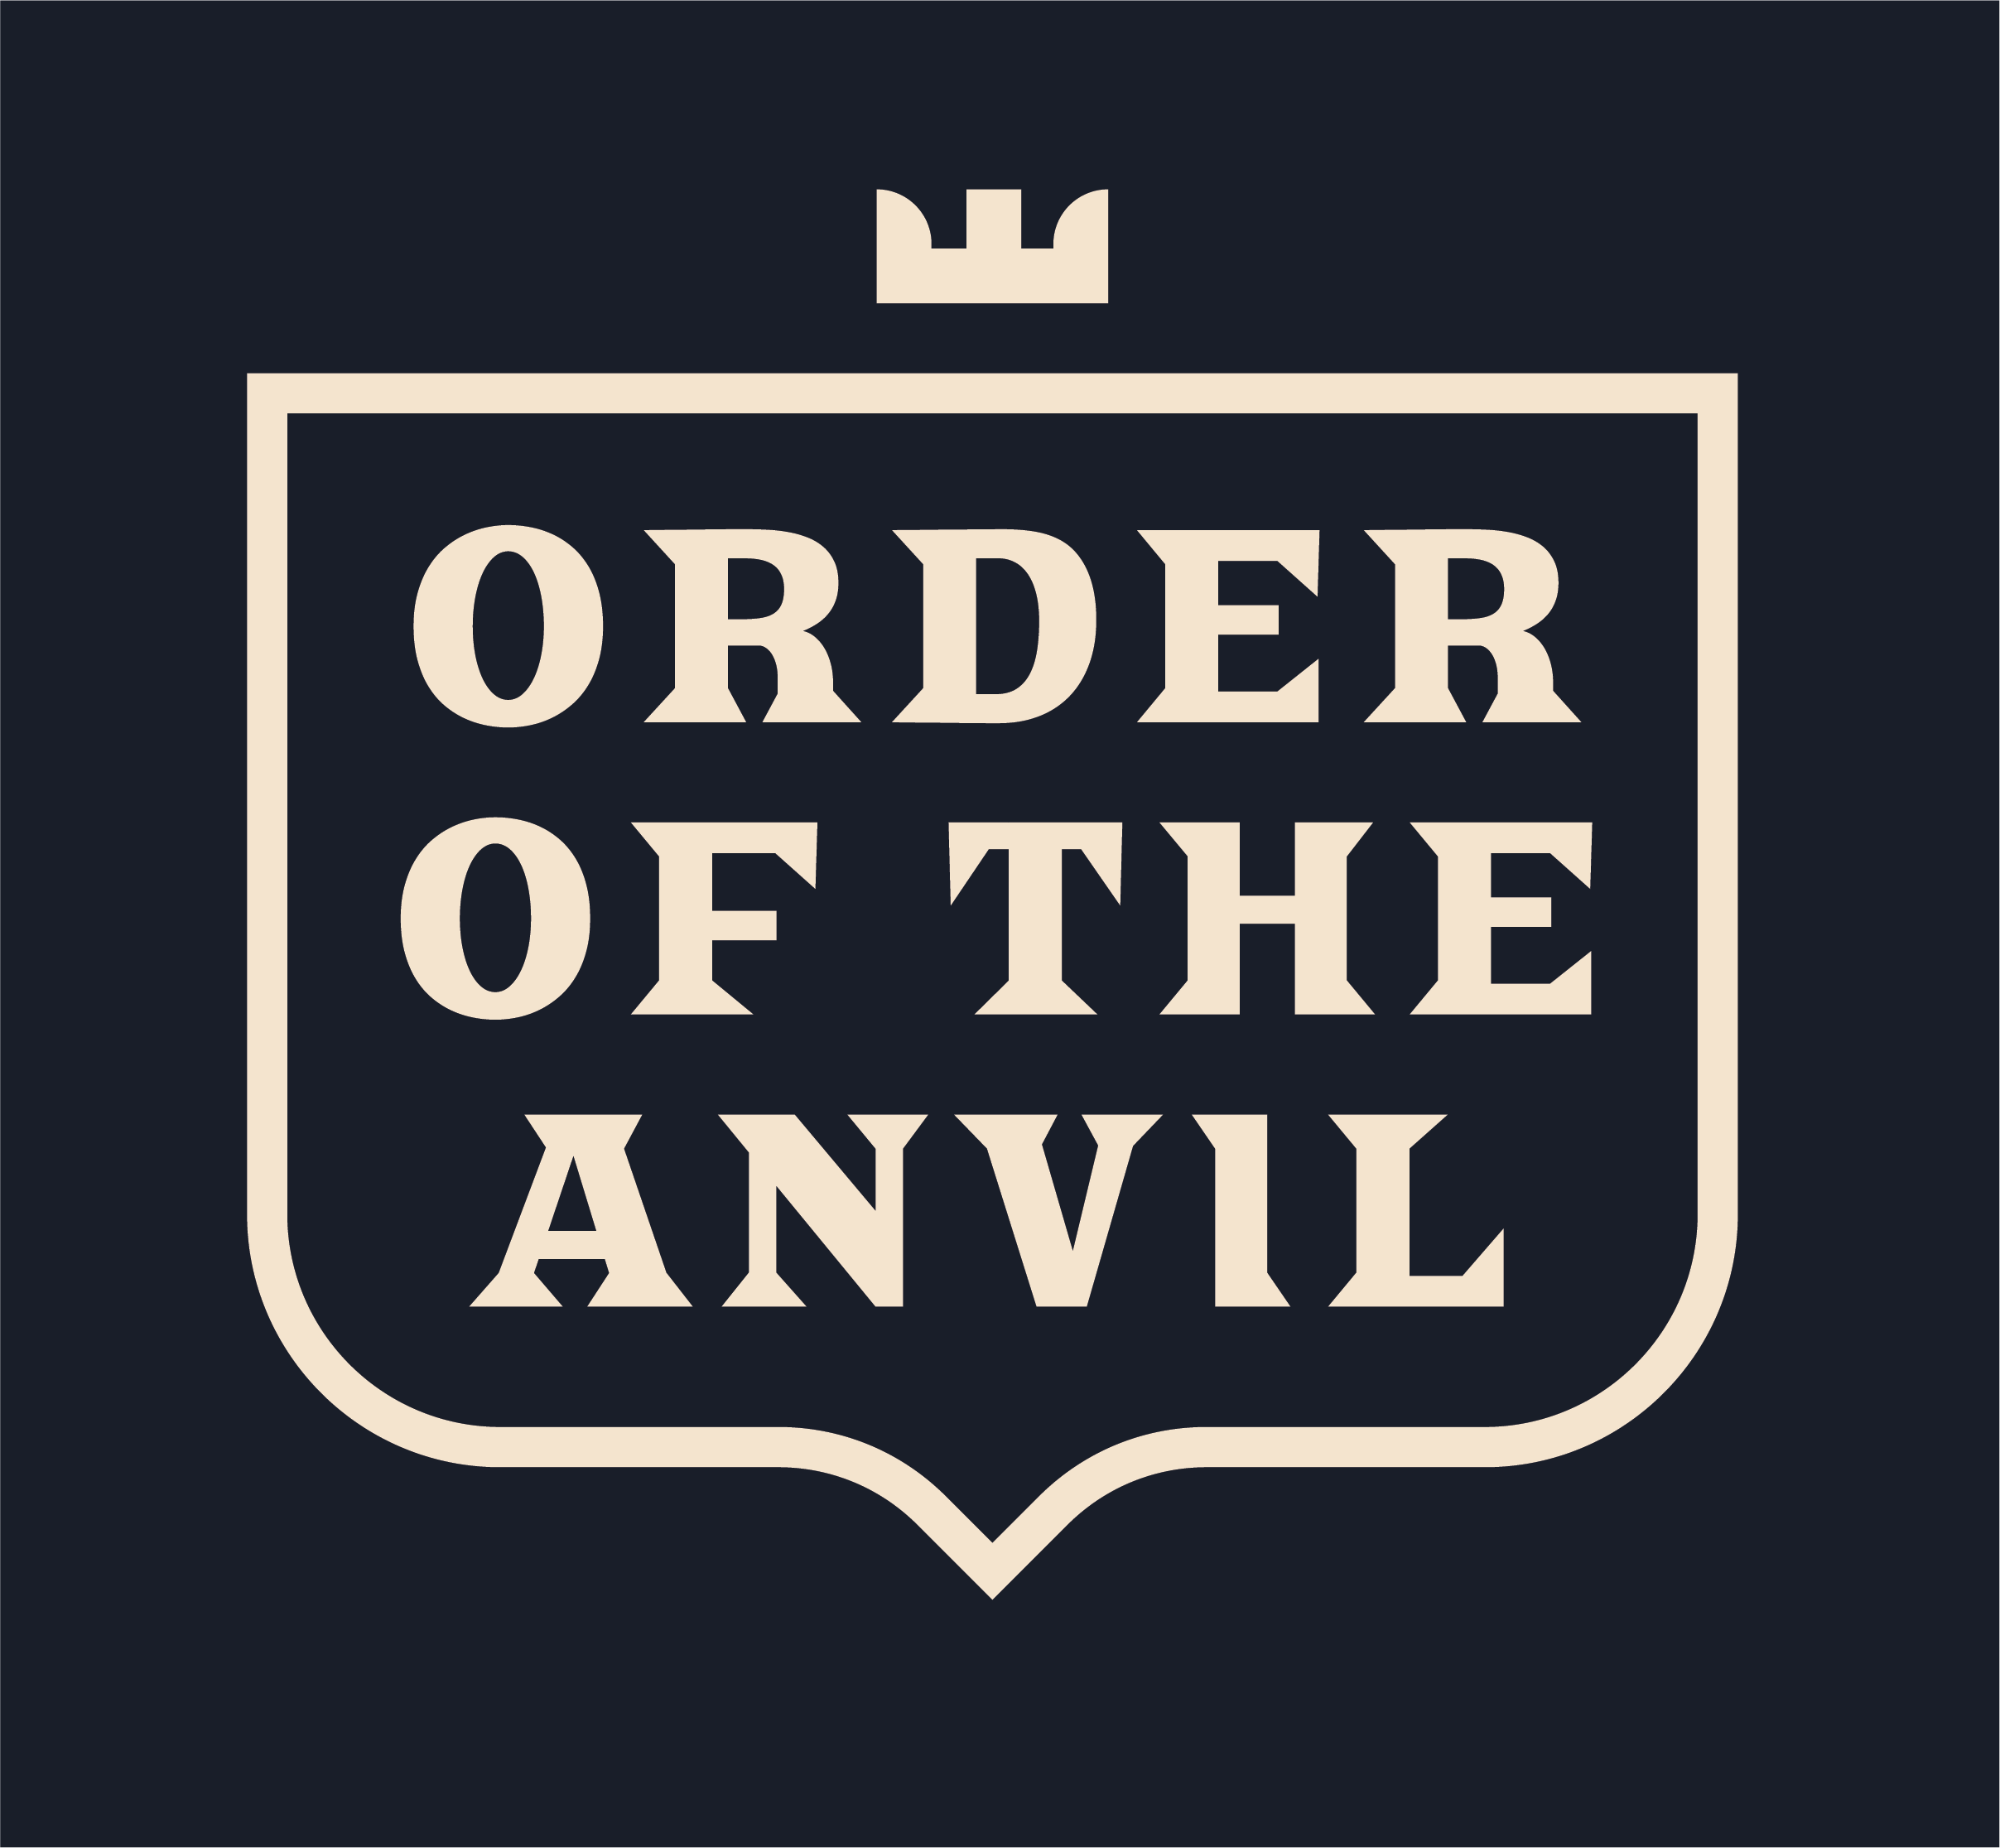 2021 Order of the Anvil Membership - AleSmith Brewing Co.